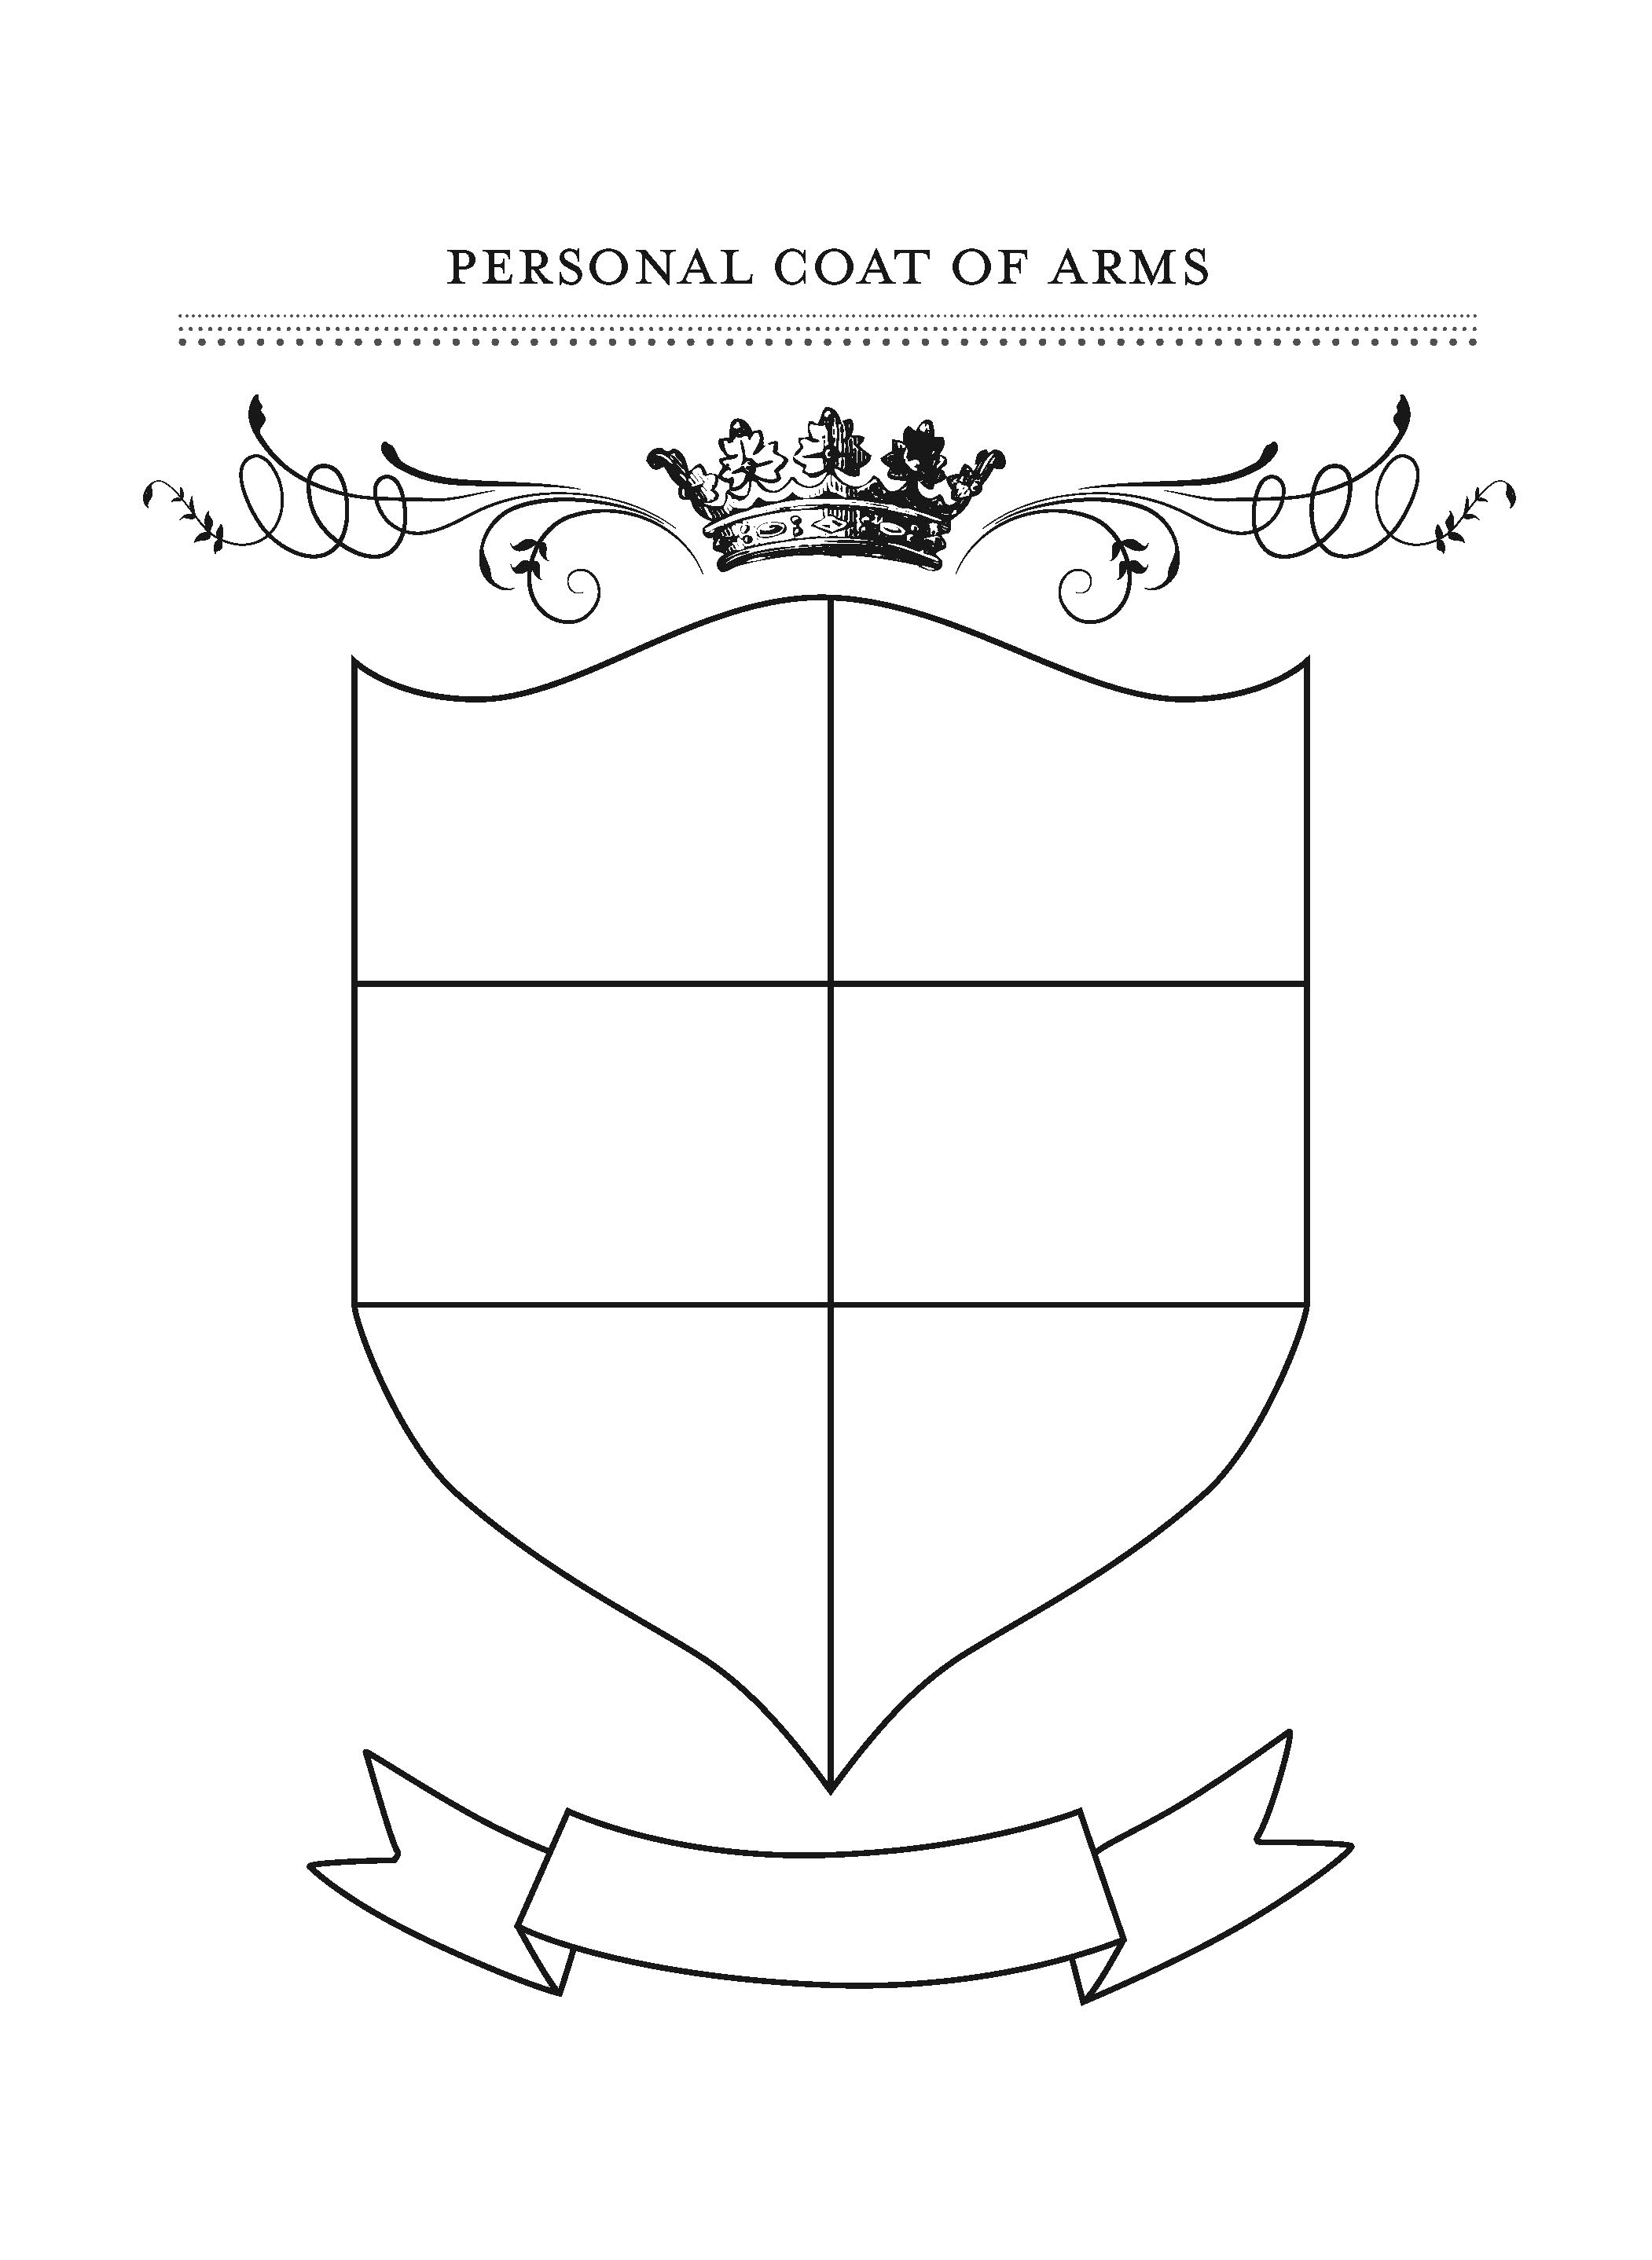 personal coat of arms